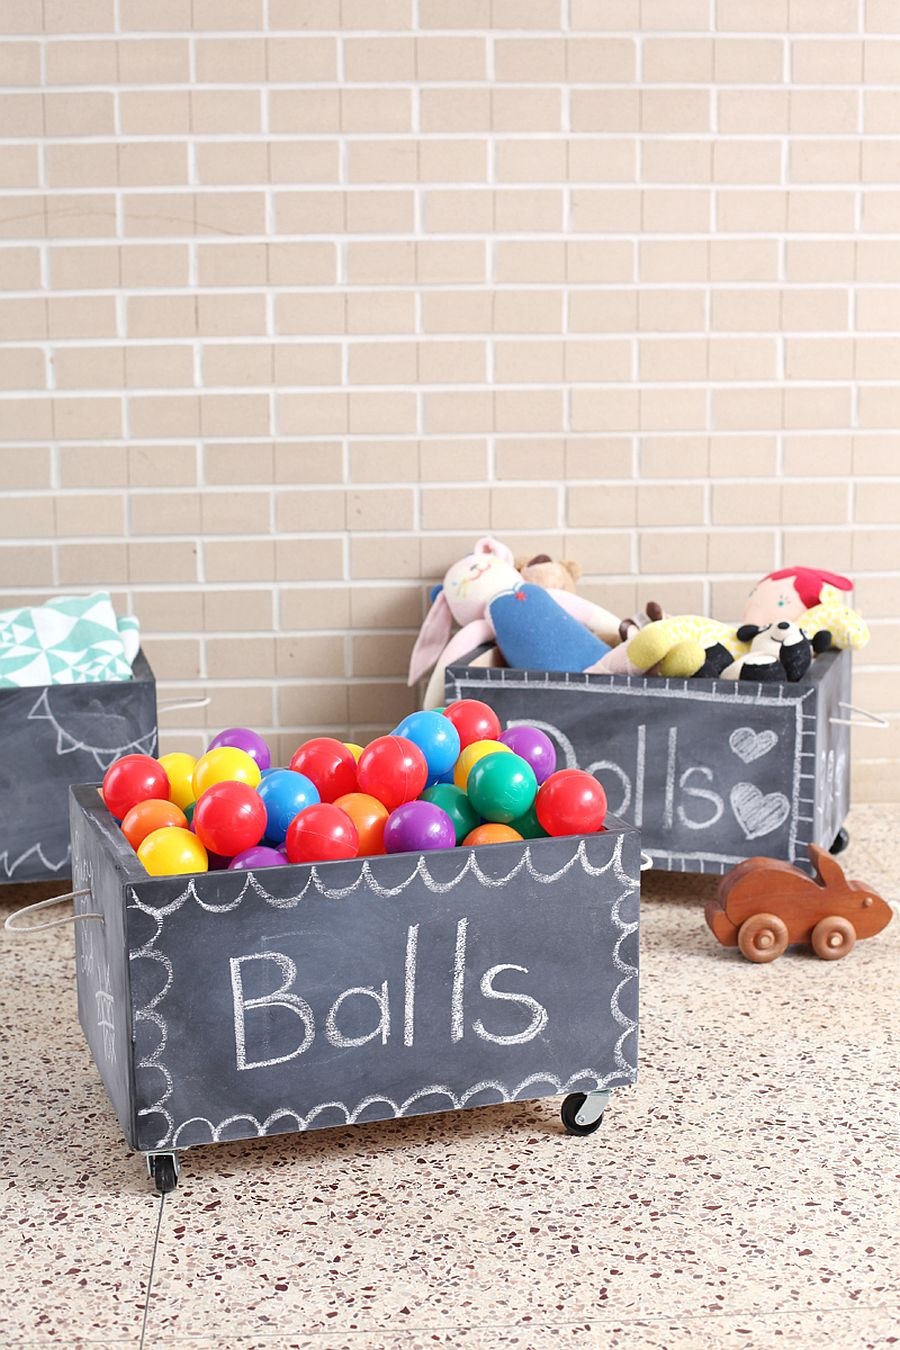 Easy to make DIY chalkboard toy boxes on wheels